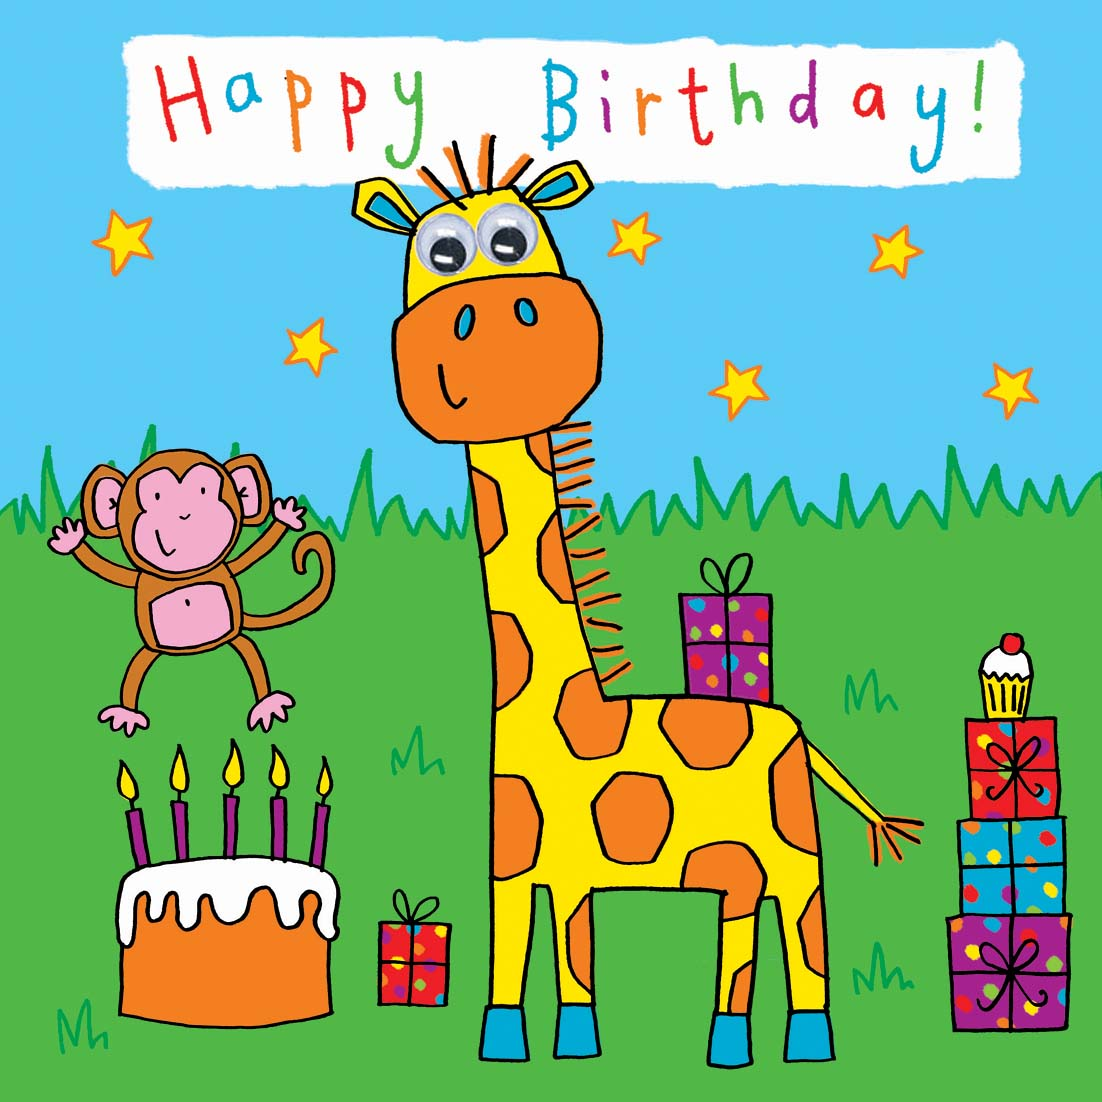 photograph about Printable Children's Birthday Cards identify Childrens Birthday Card - Giraffe